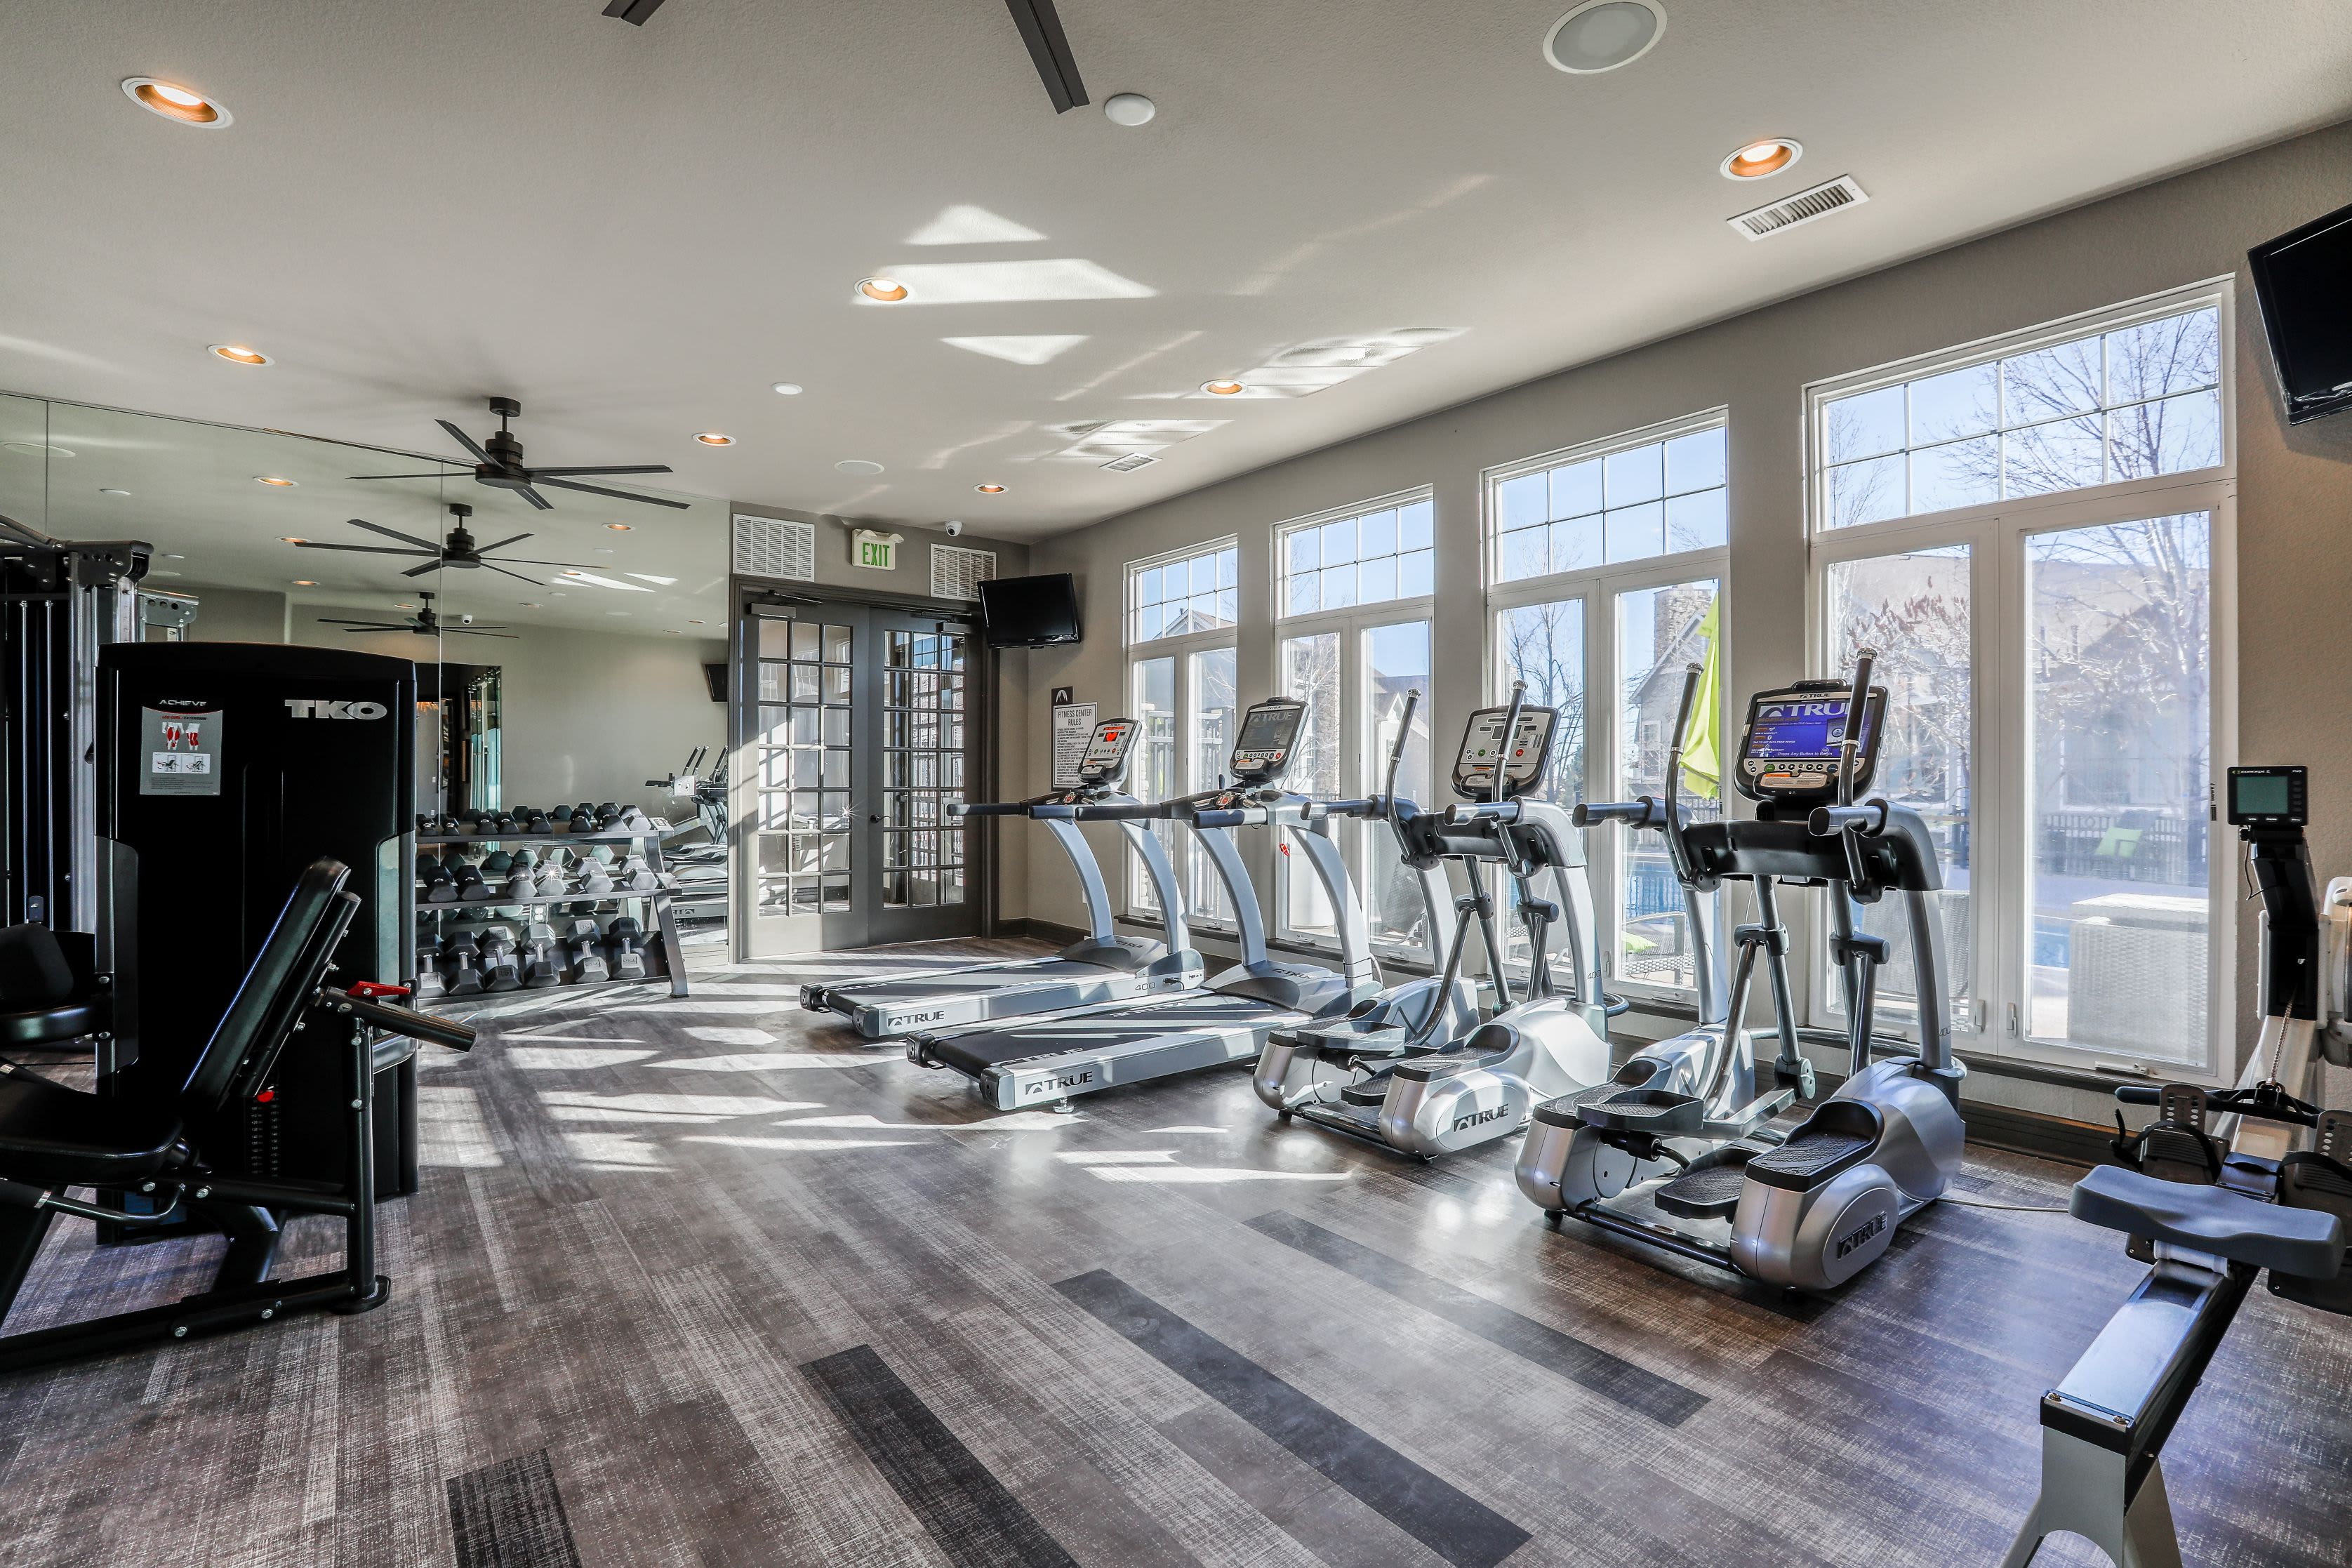 Cardio machines in the fitness center at Marquis Castle Pines in Castle Pines, Colorado